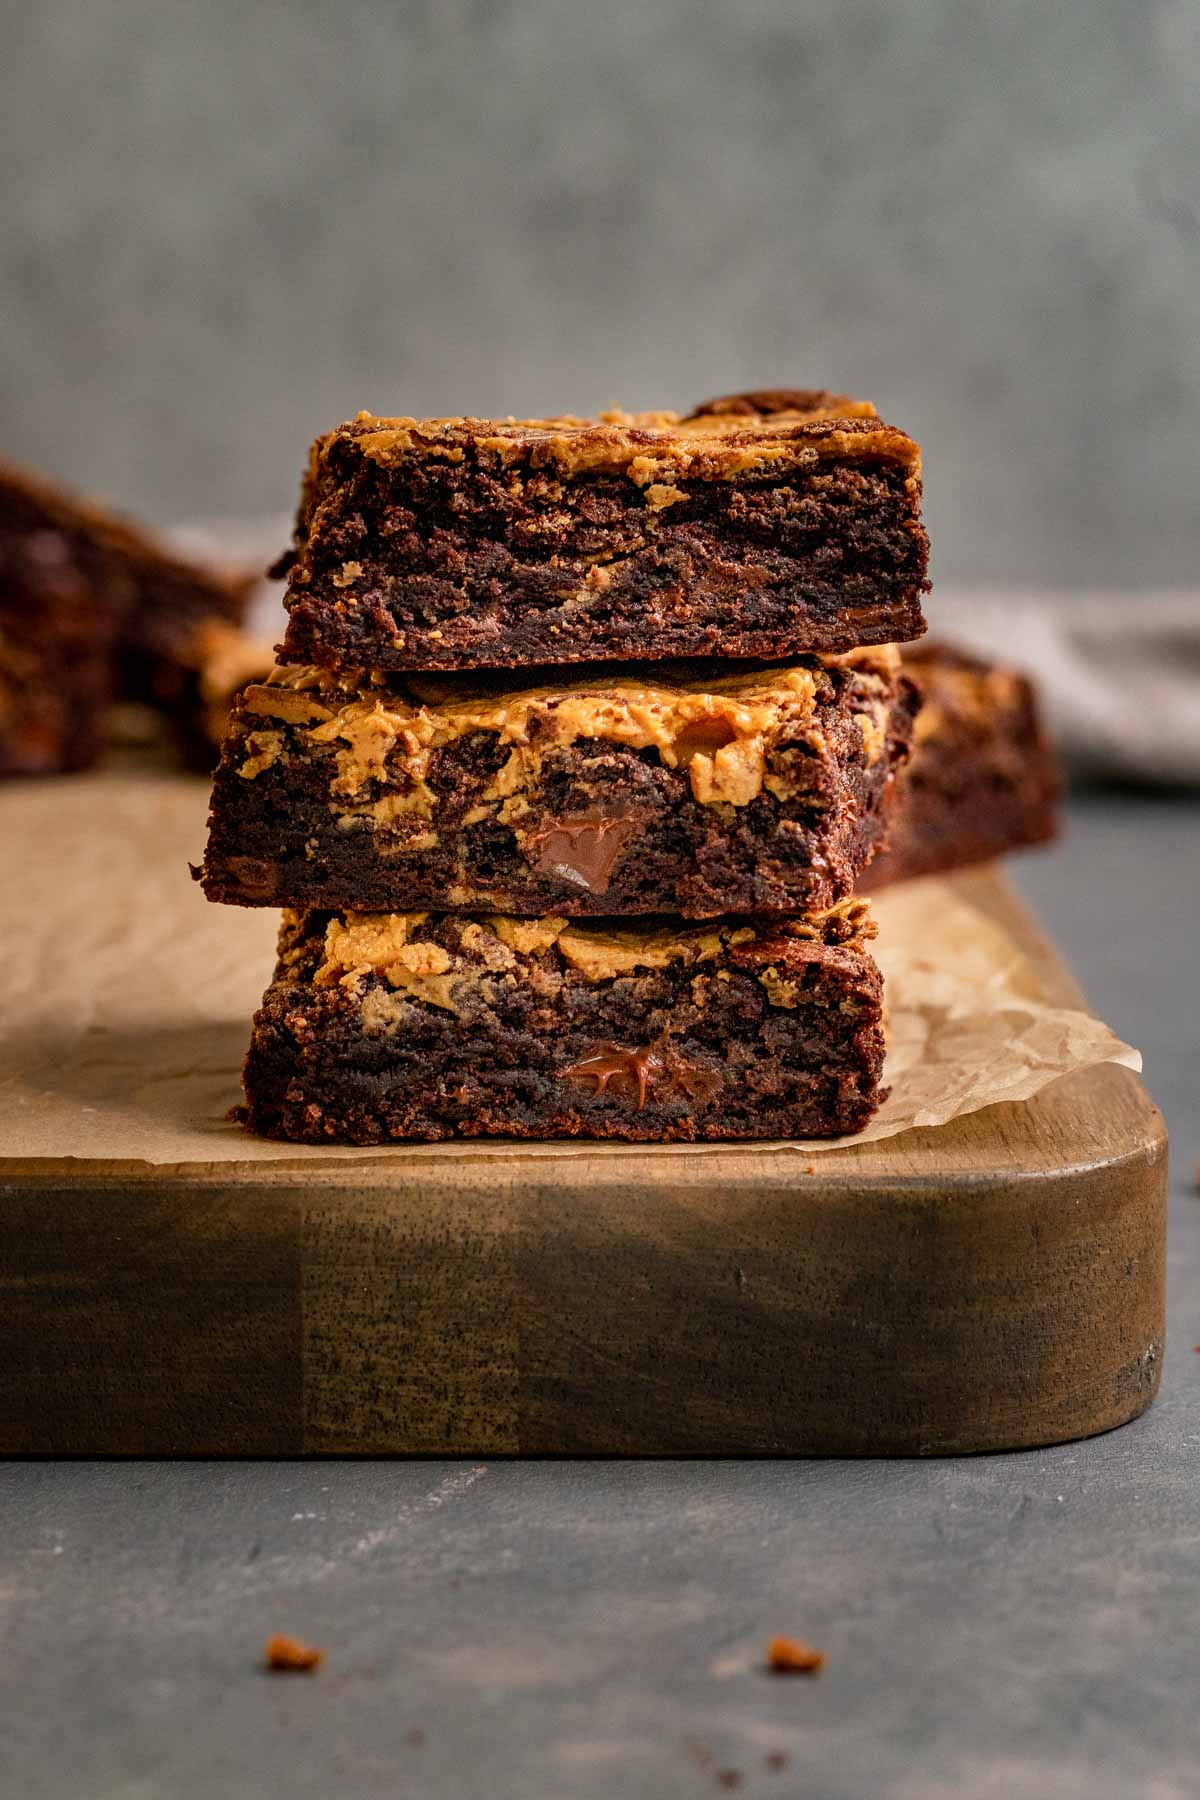 Peanut Butter Swirl Brownies sliced and stacked on cutting board